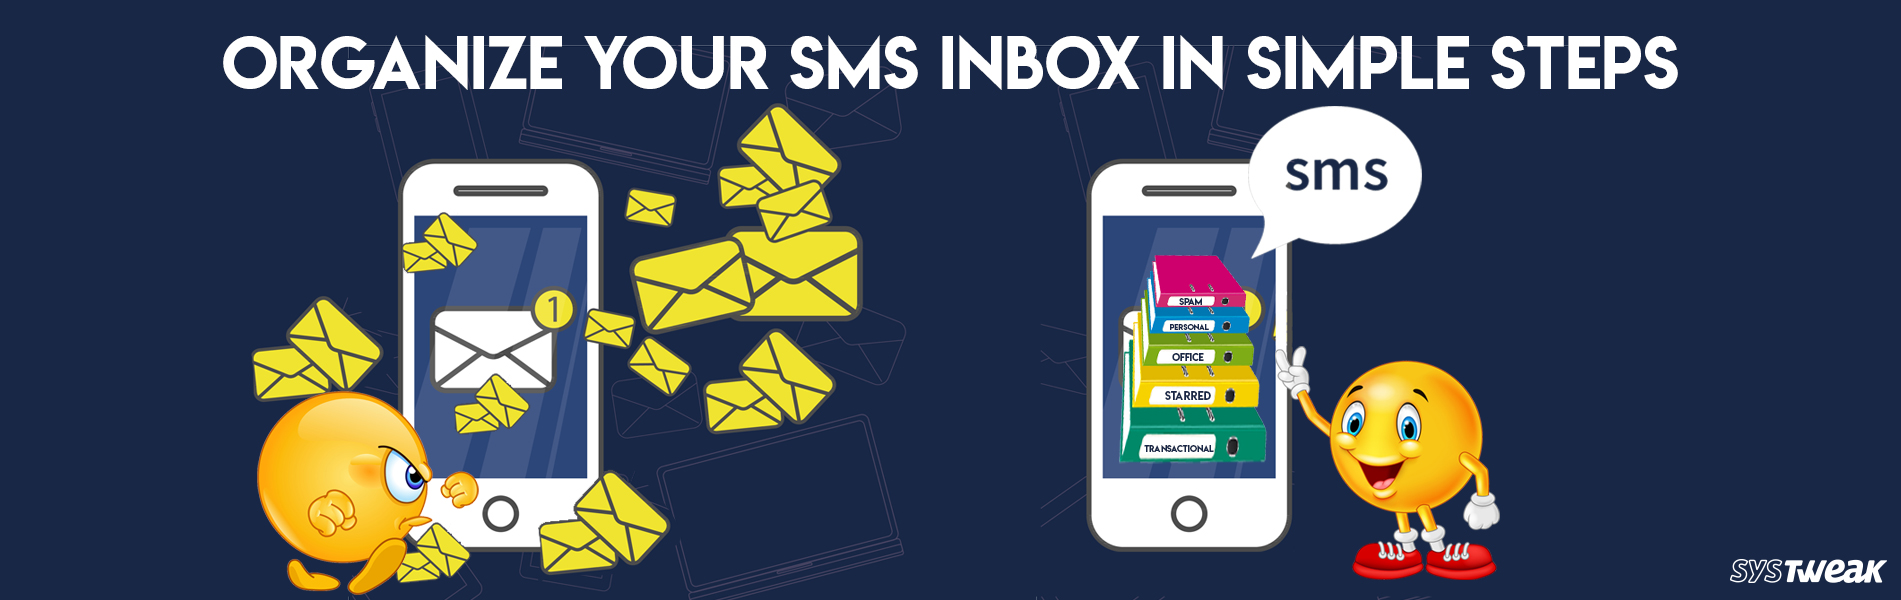 How to Organize SMS Inbox On Your Smartphone